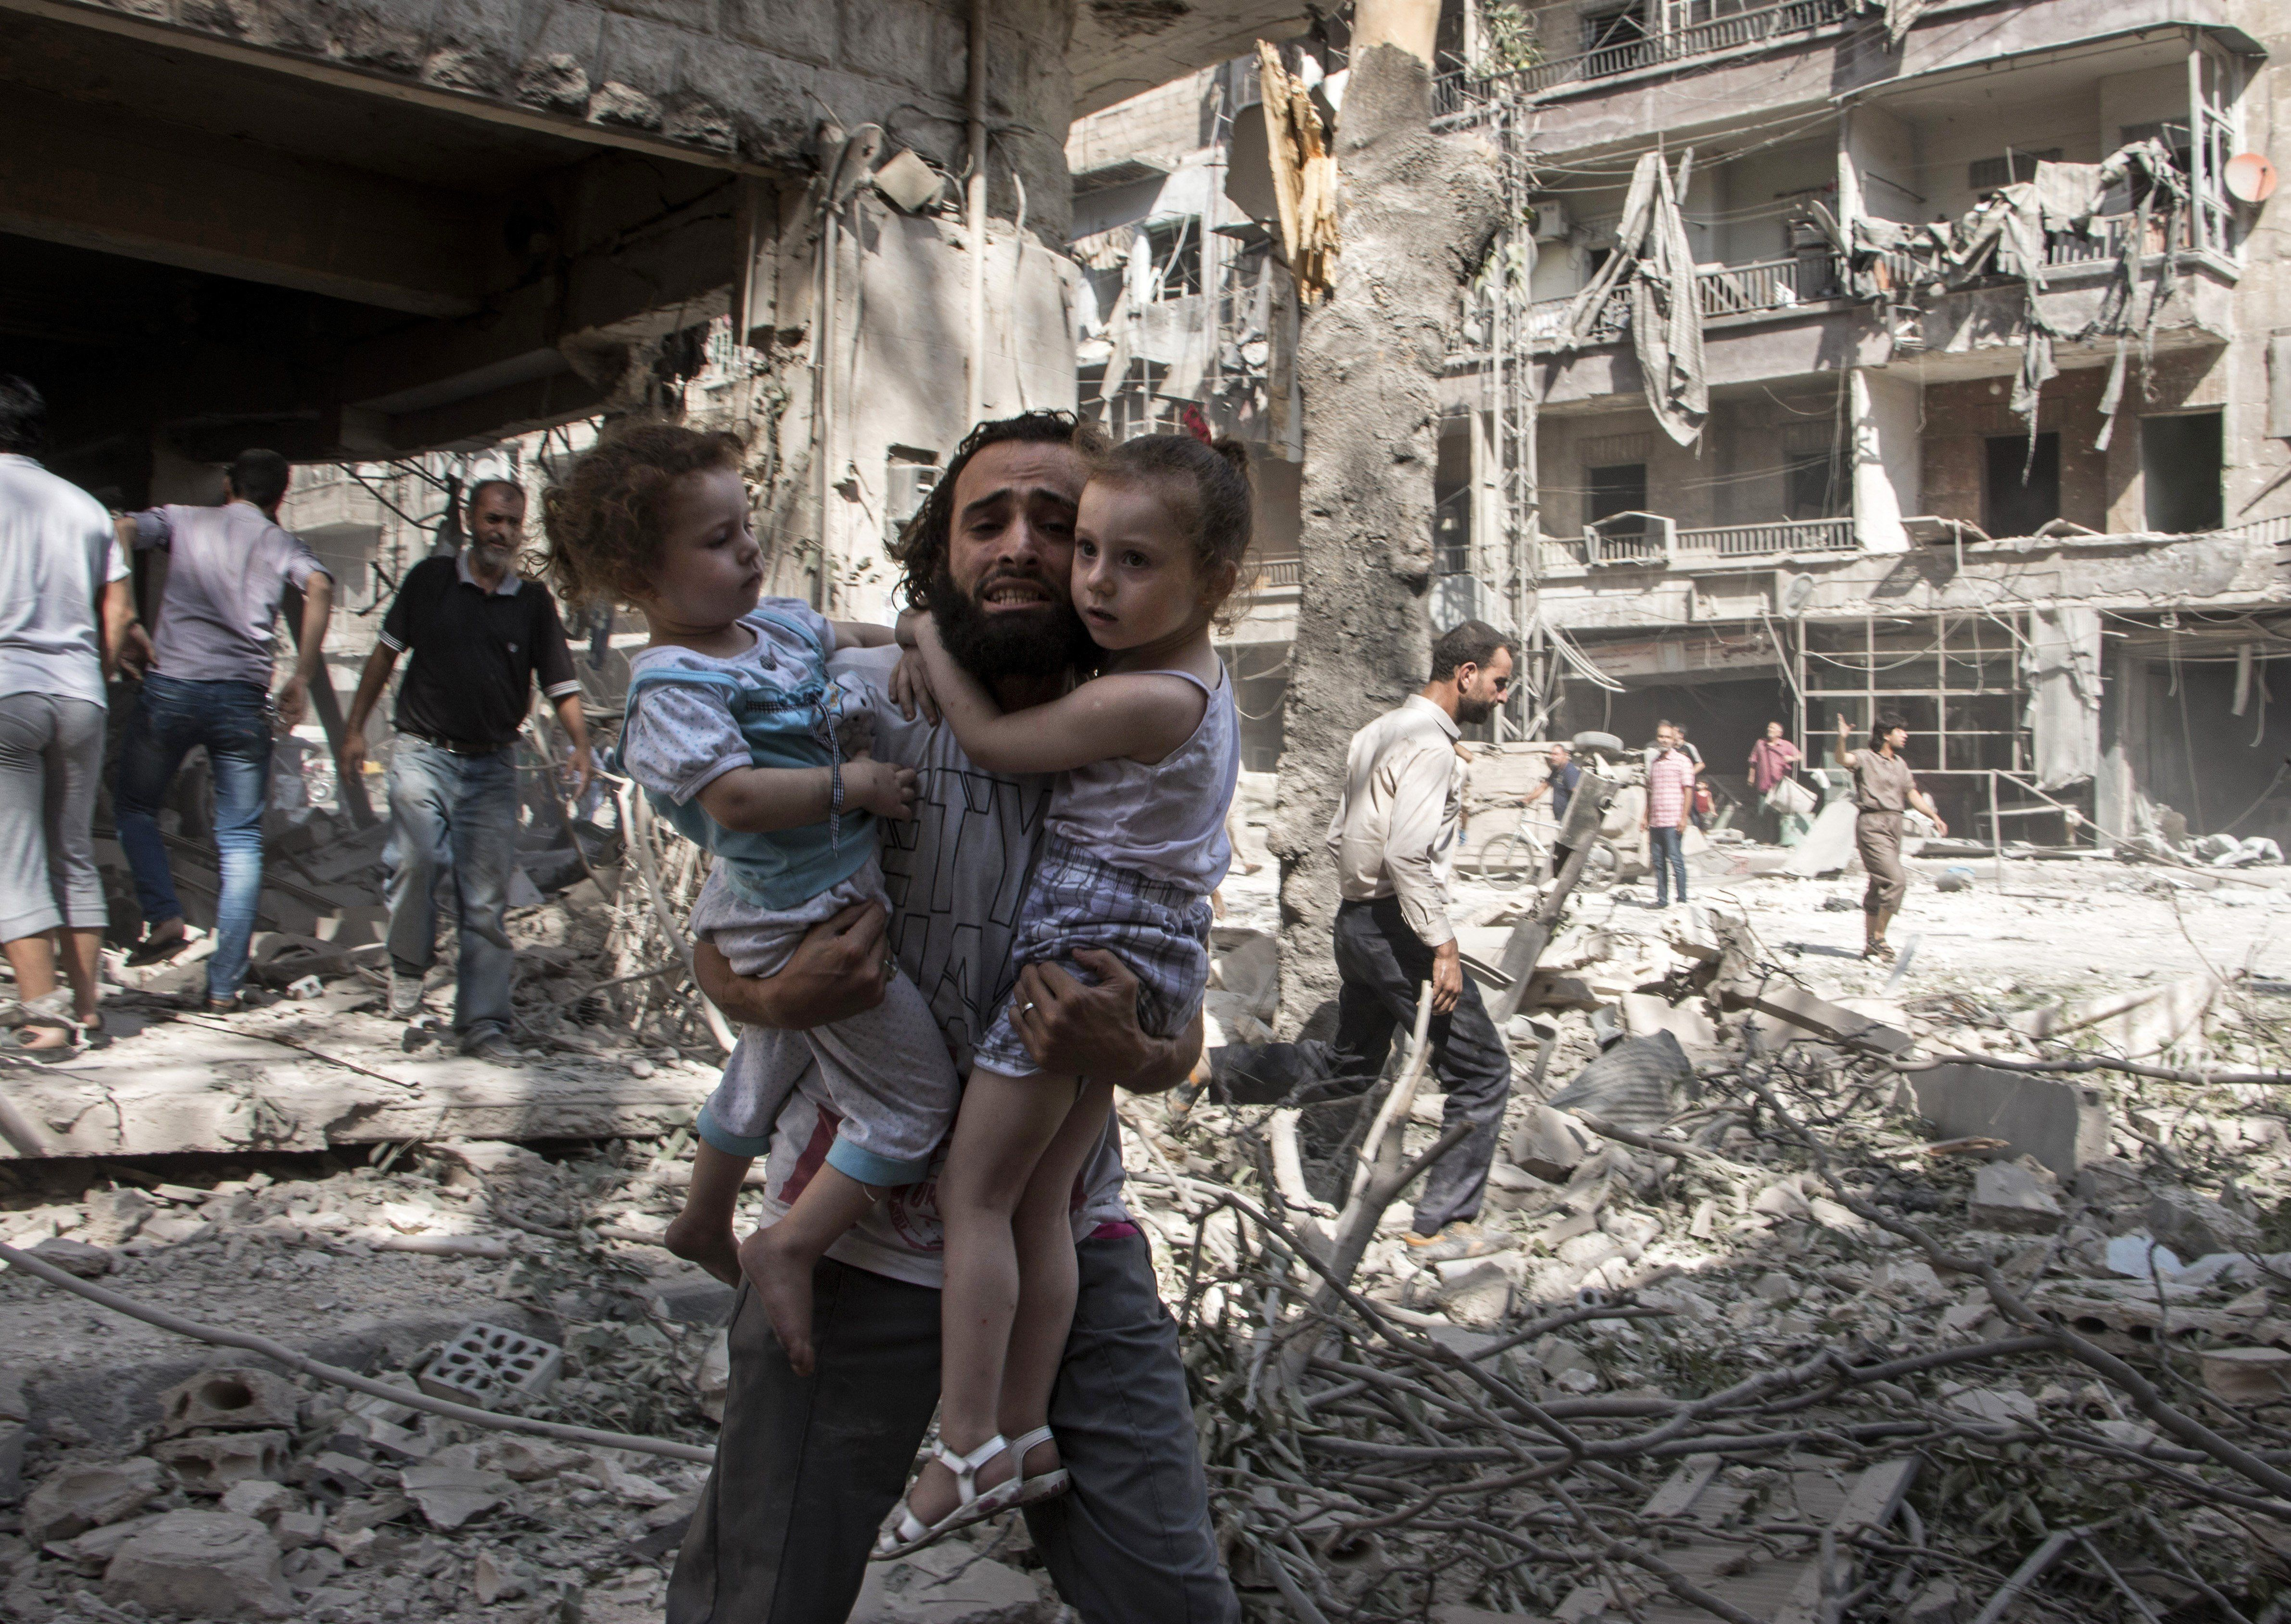 "<span class='image-component__caption' itemprop=""caption"">A Syrian man carries his two girls as he walks across the rubble following an airstrike in Aleppo on Sept. 17, 2015.</span>"